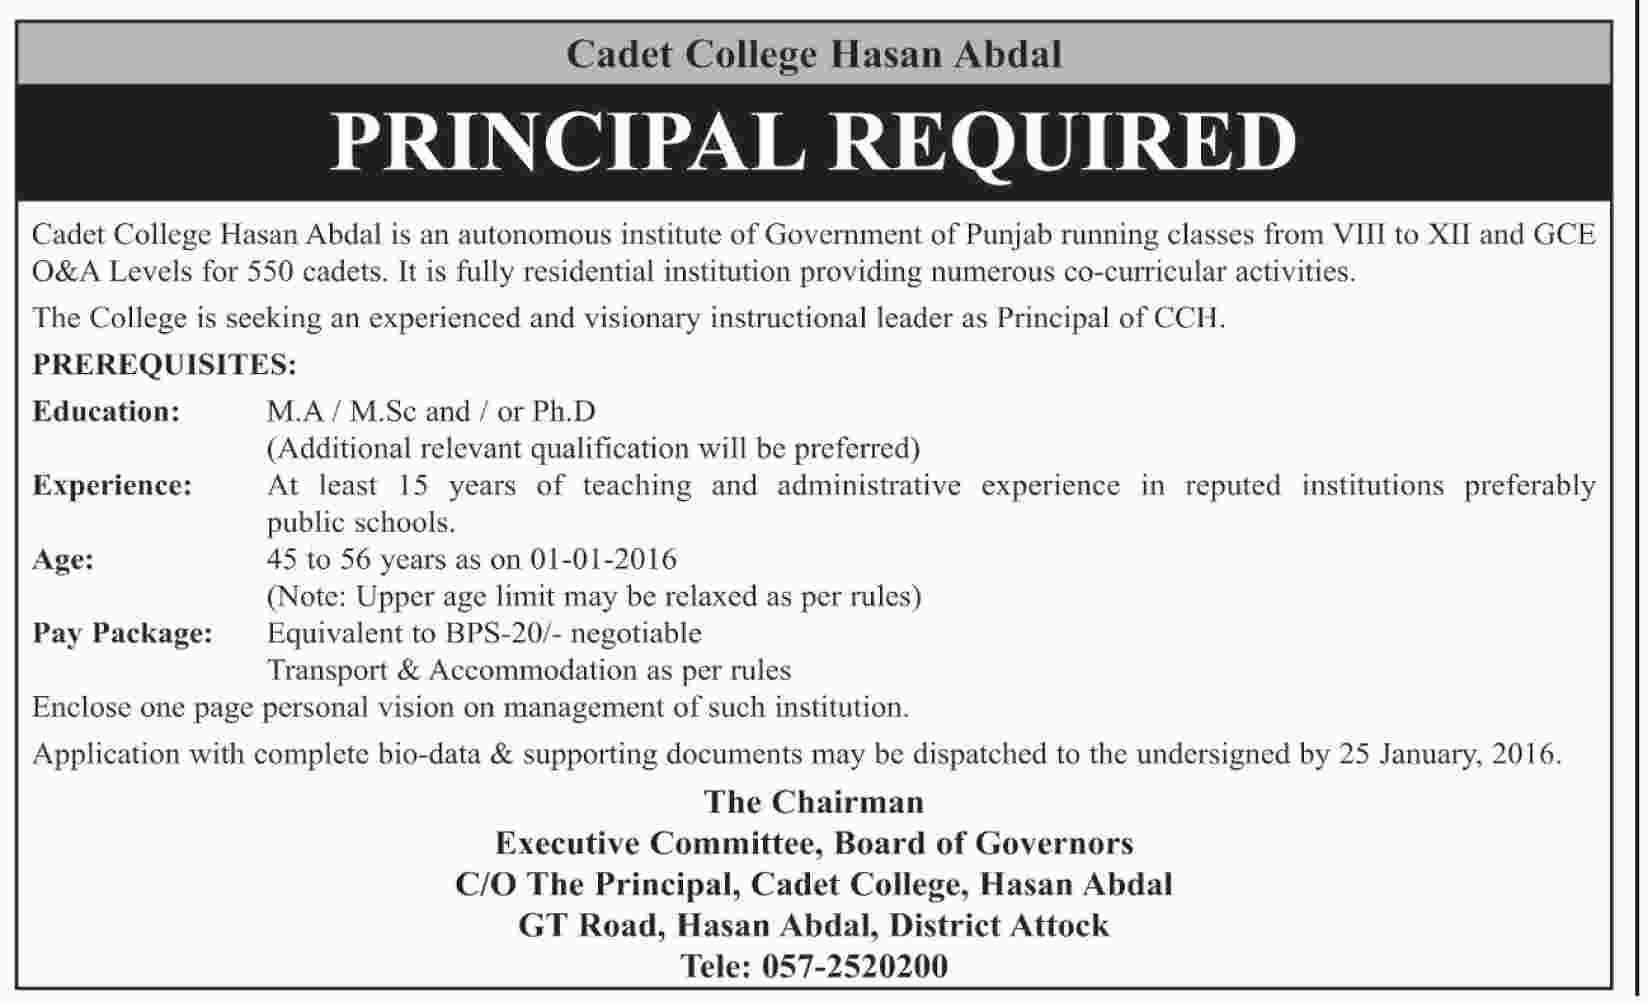 Principal Jobs Opportunities At Cadet College Hasan Abdal On 12